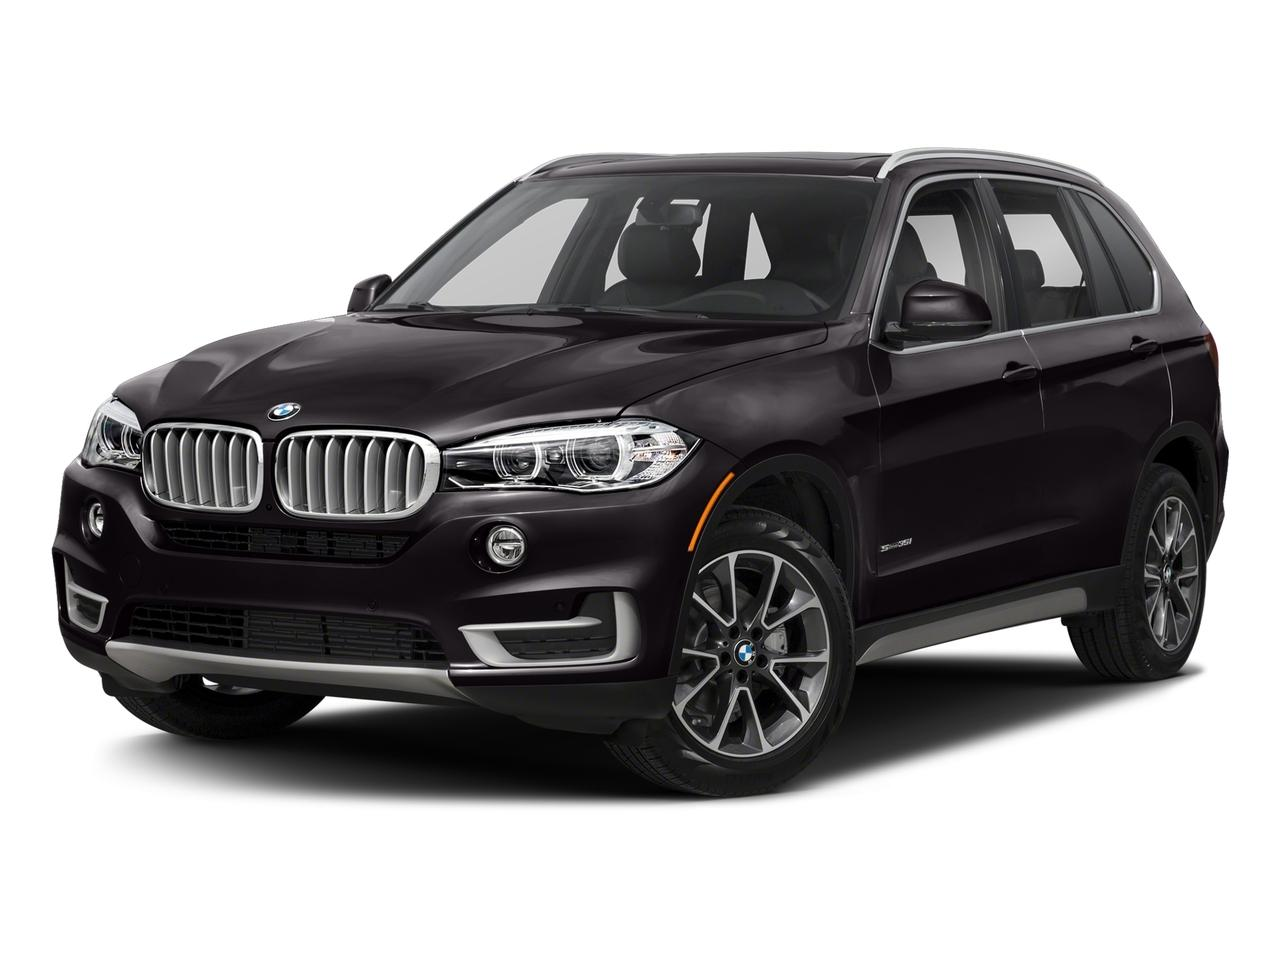 2018 BMW X5 xDrive50i Vehicle Photo in Pleasanton, CA 94588